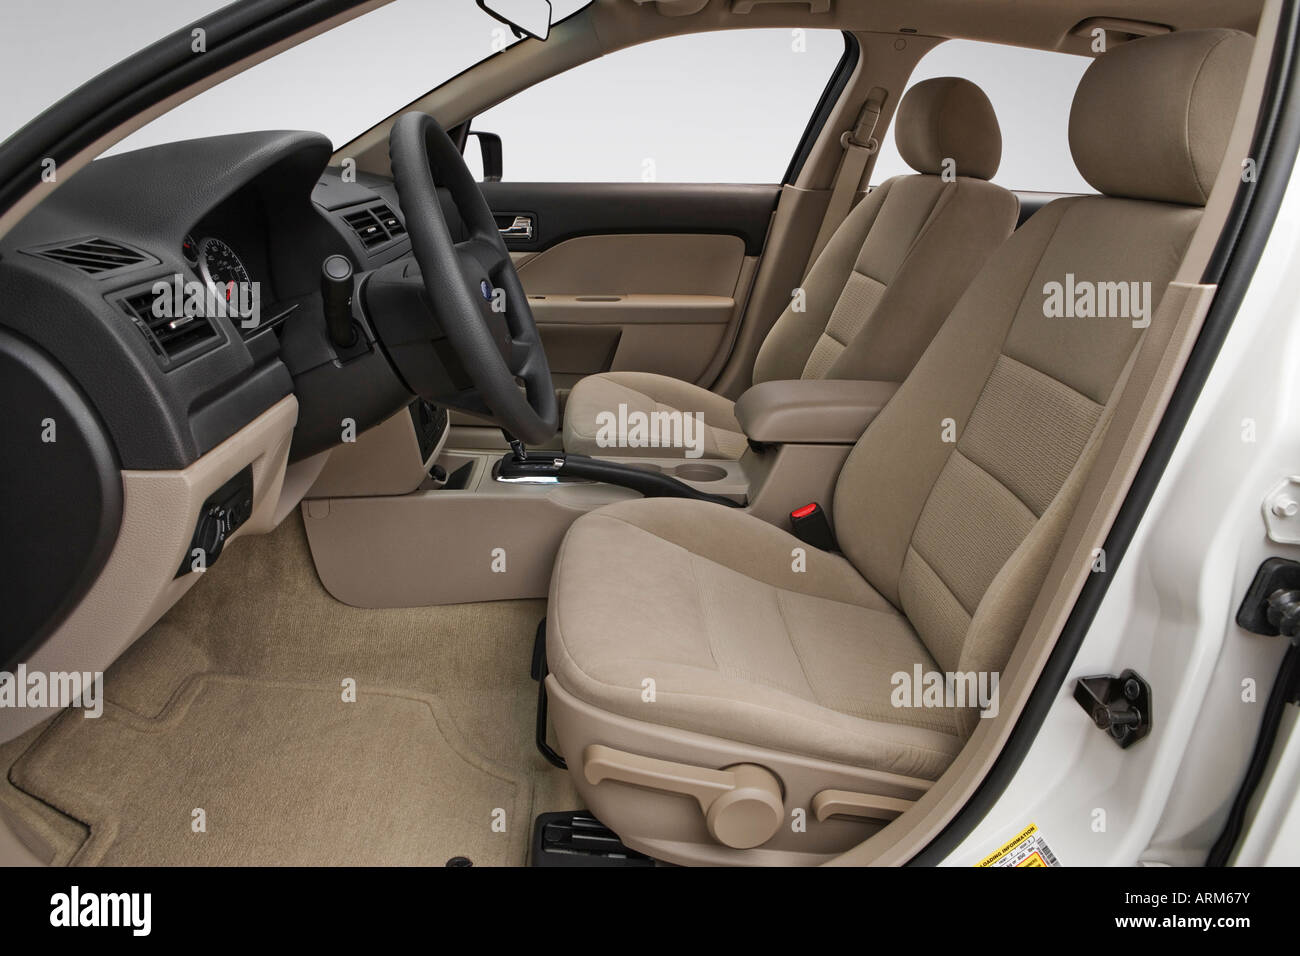 2008 Ford Fusion S in White - Front seats - Stock Image